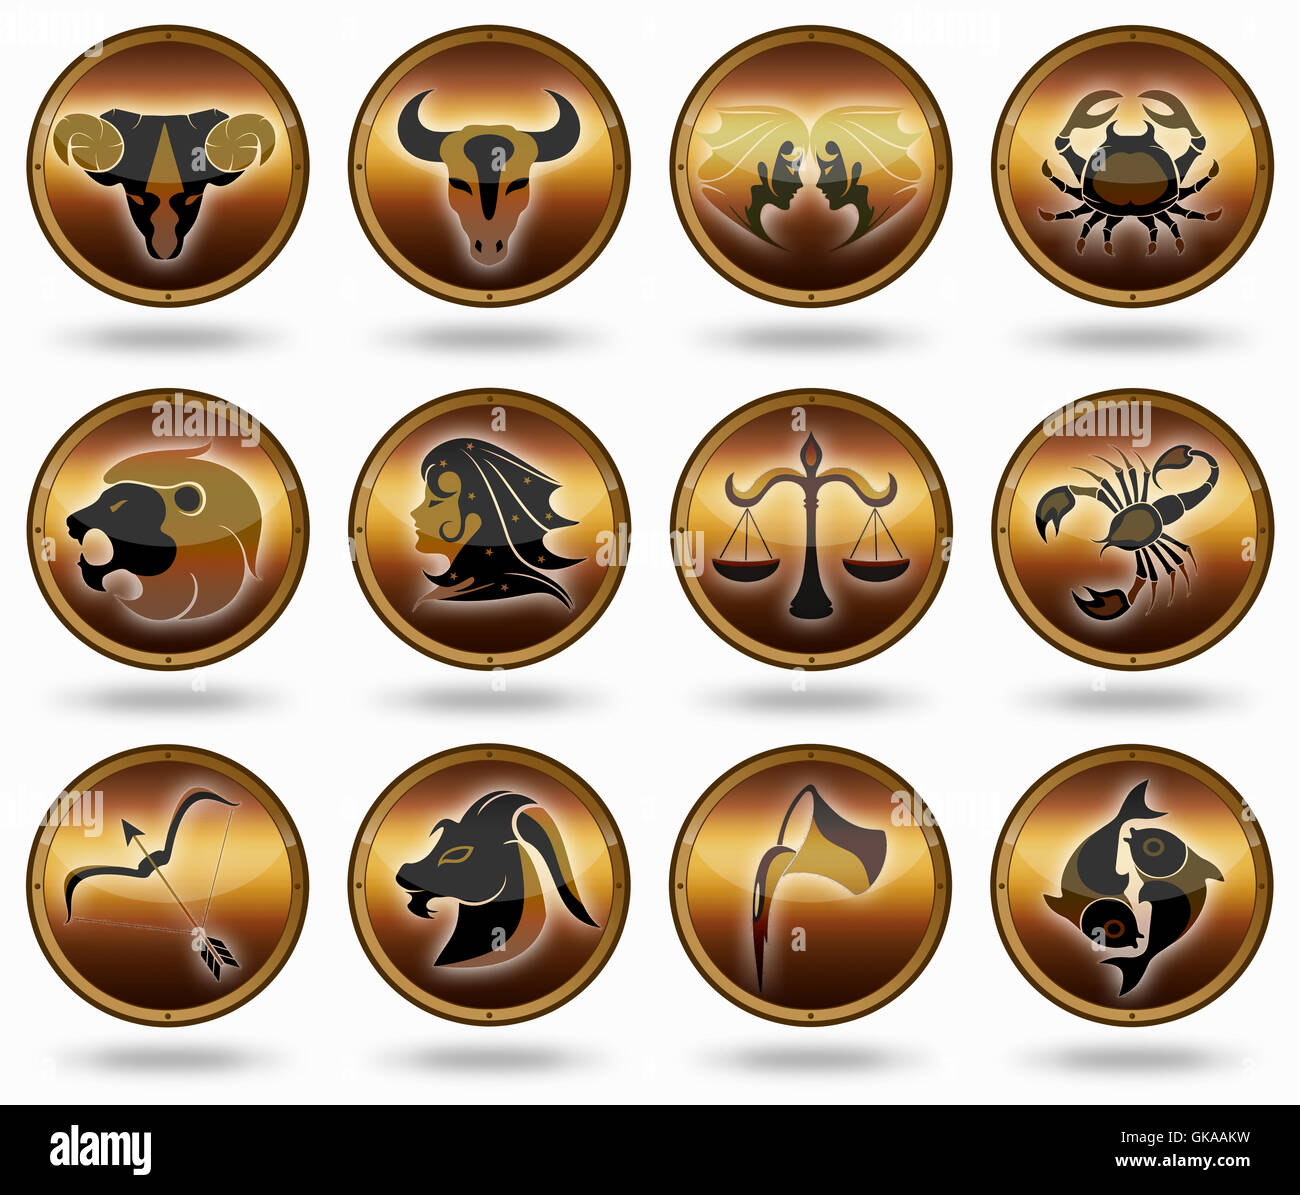 Zodiac Fire Sign Stock Photos & Zodiac Fire Sign Stock Images - Page